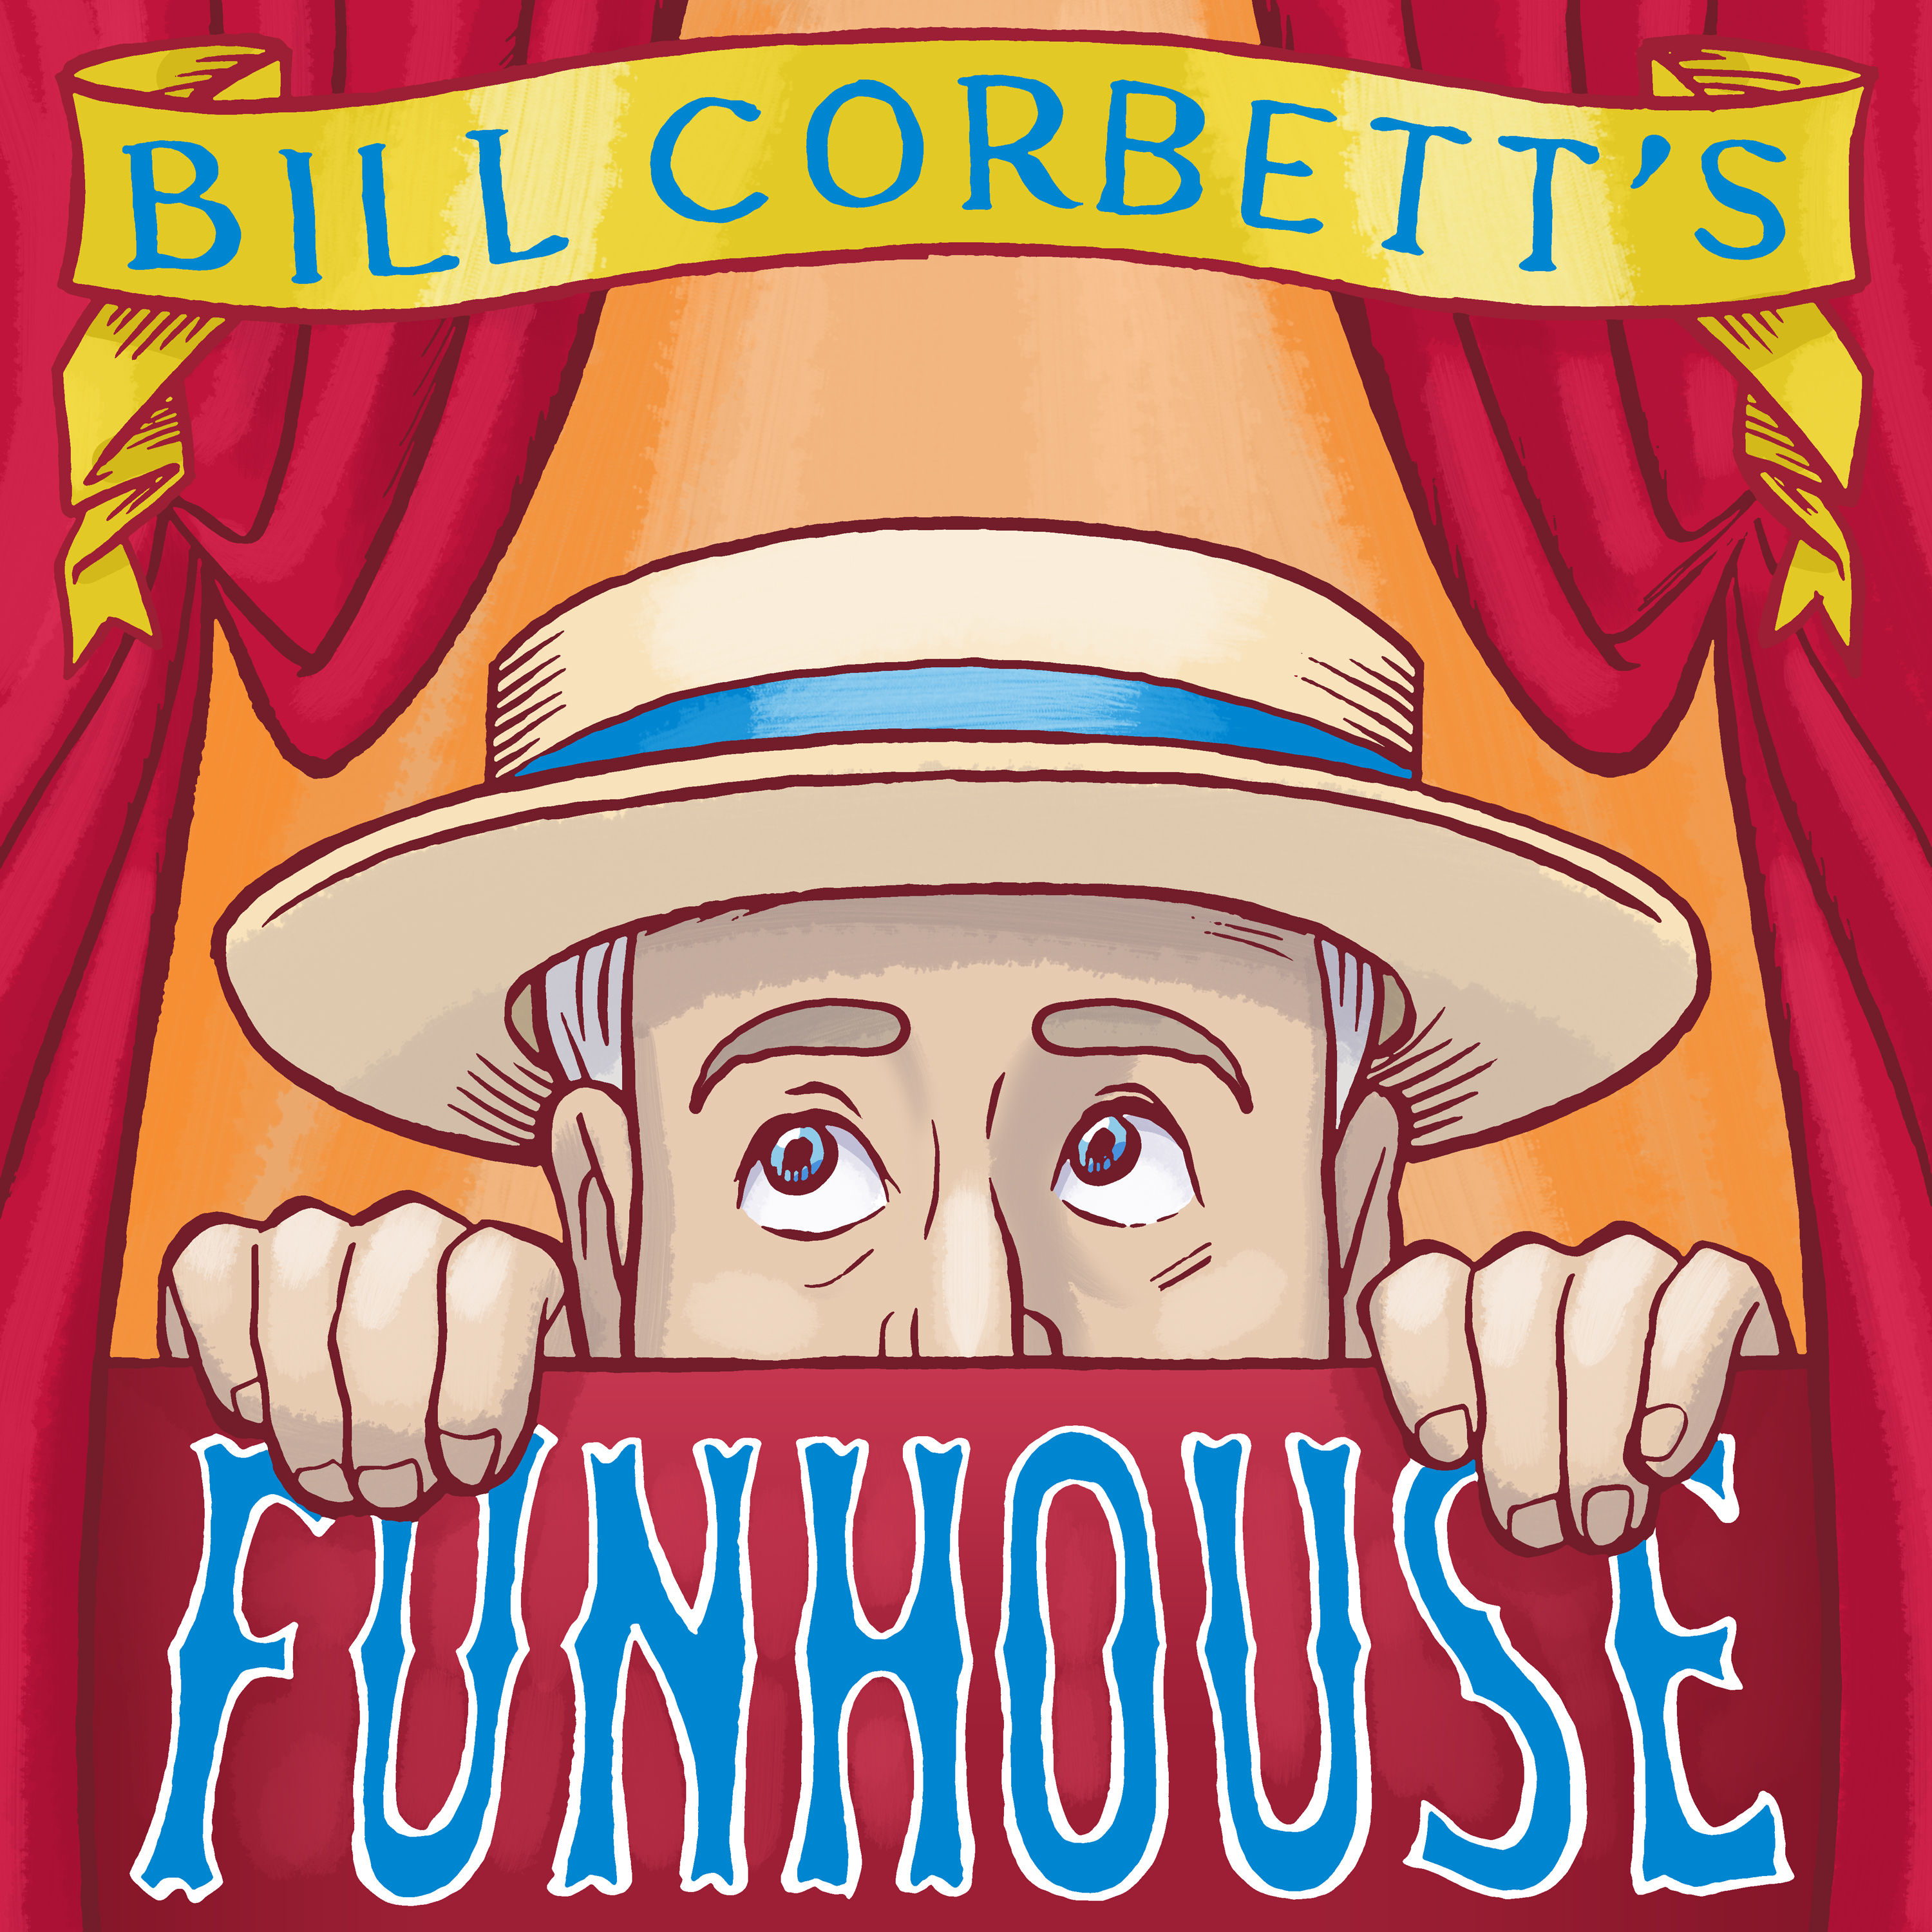 Bill Corbett's Funhouse show art